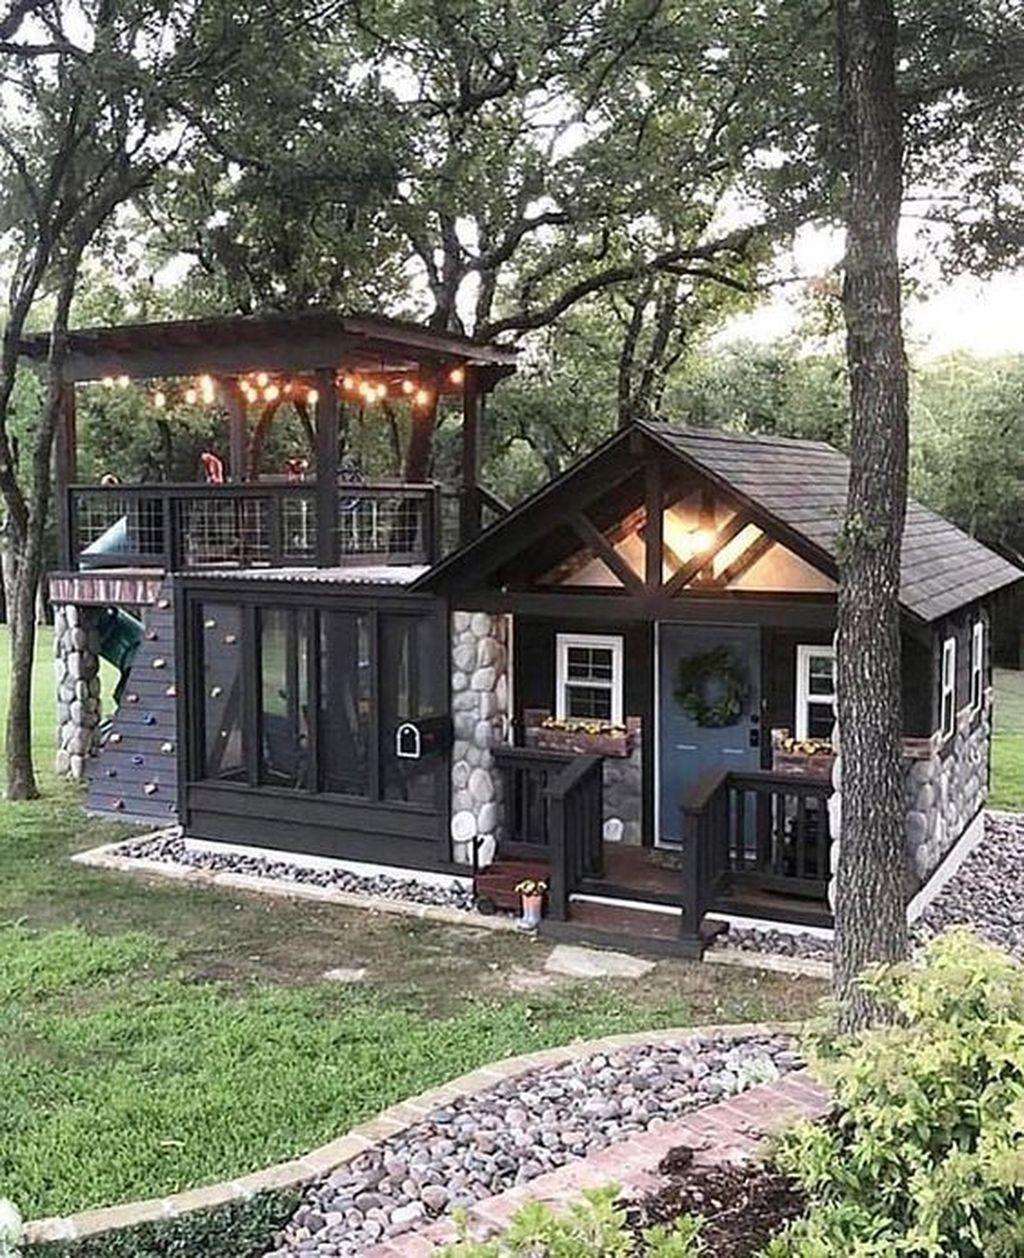 20 Cute Tiny House Design Ideas On Wheels That You Must Have Now Best Tiny House Small House Design Tiny House Design